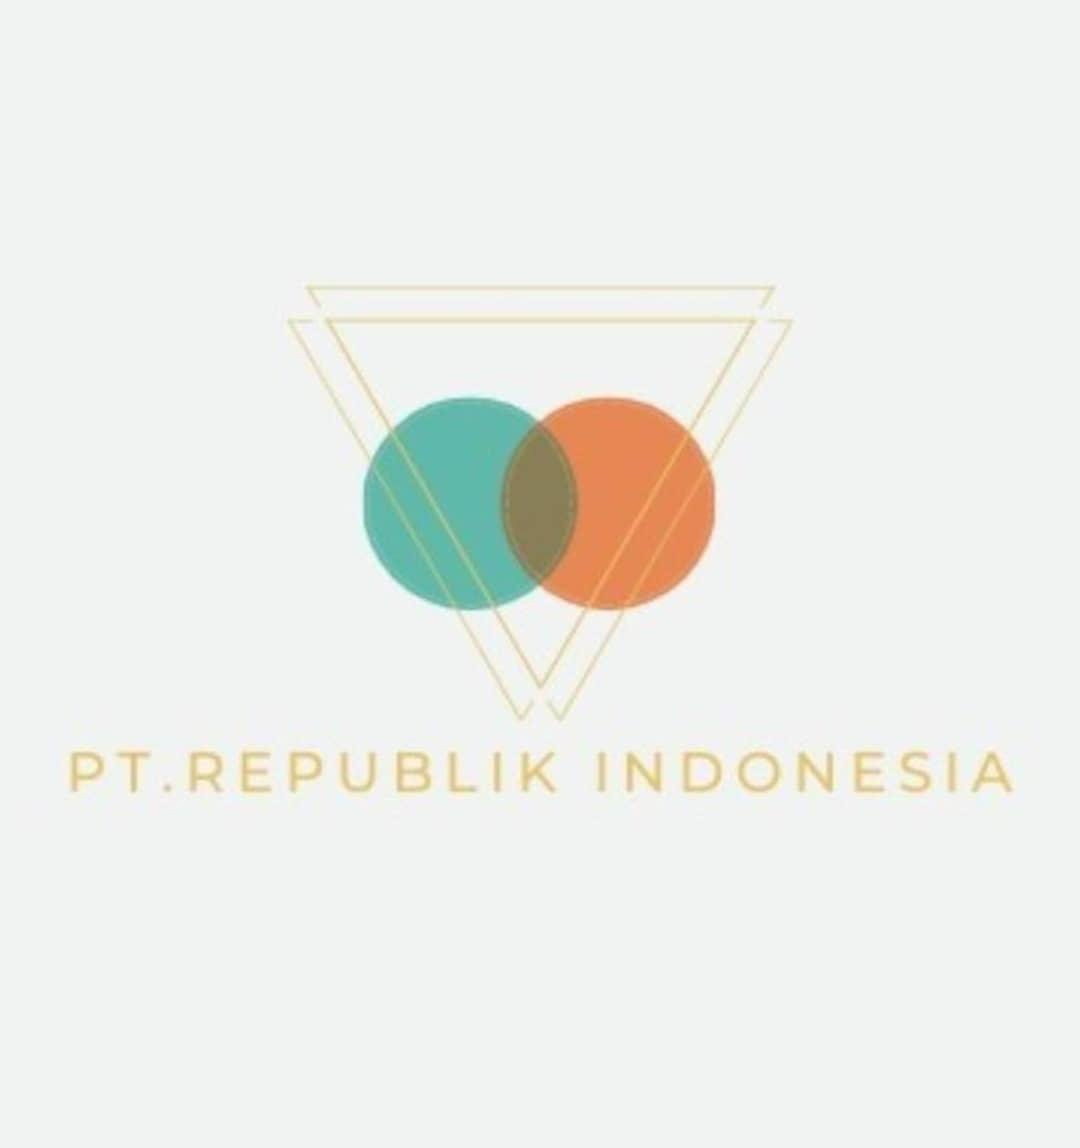 Republik Indonesia PT